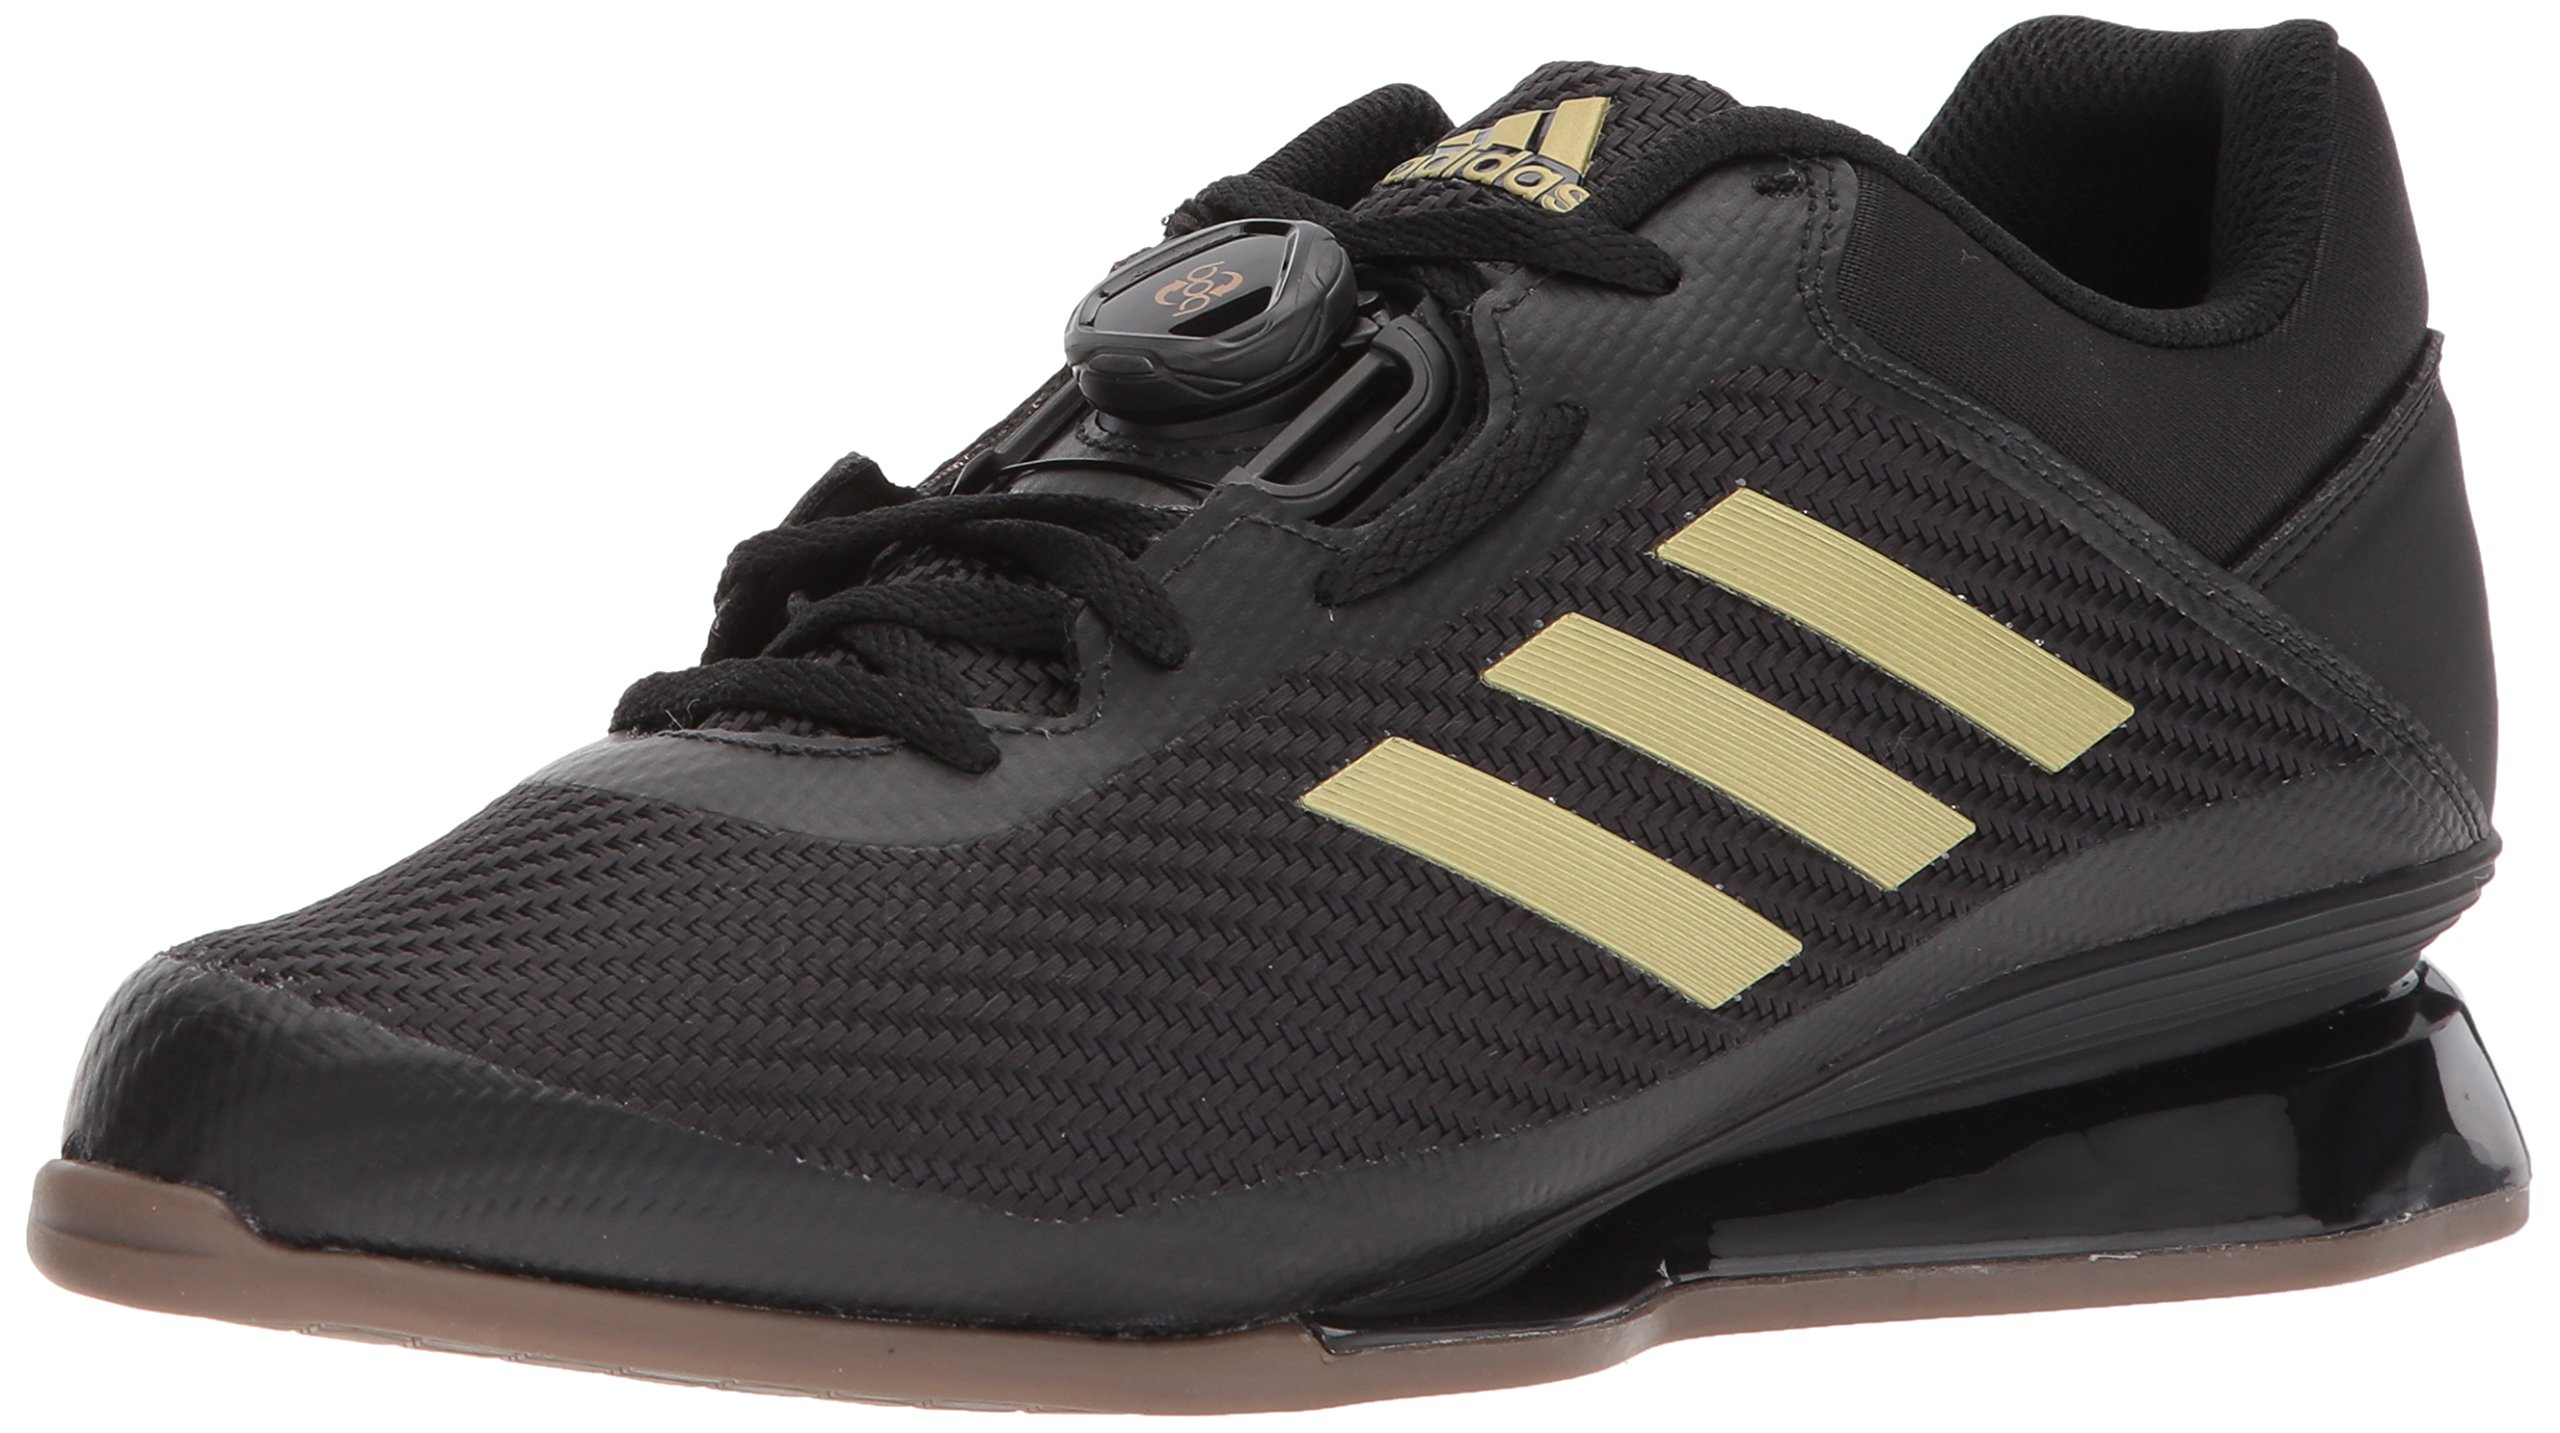 adidas Men's Leistung.16 II. Cross Trainer, Core Black/Matte Gold/Core Black, 5 M US by adidas